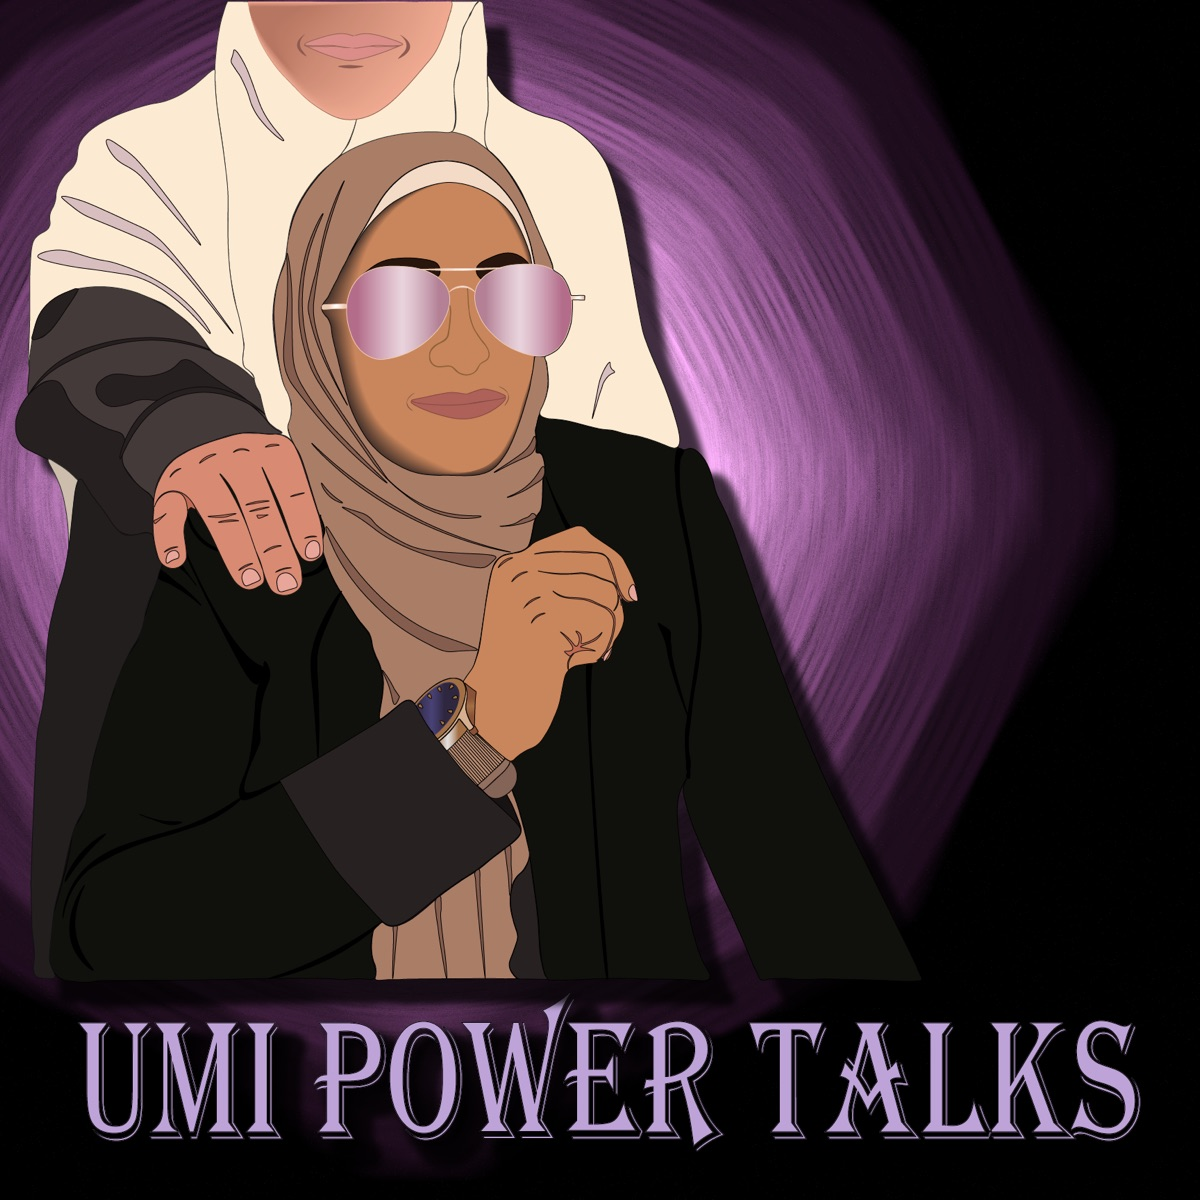 UMI Power Talks